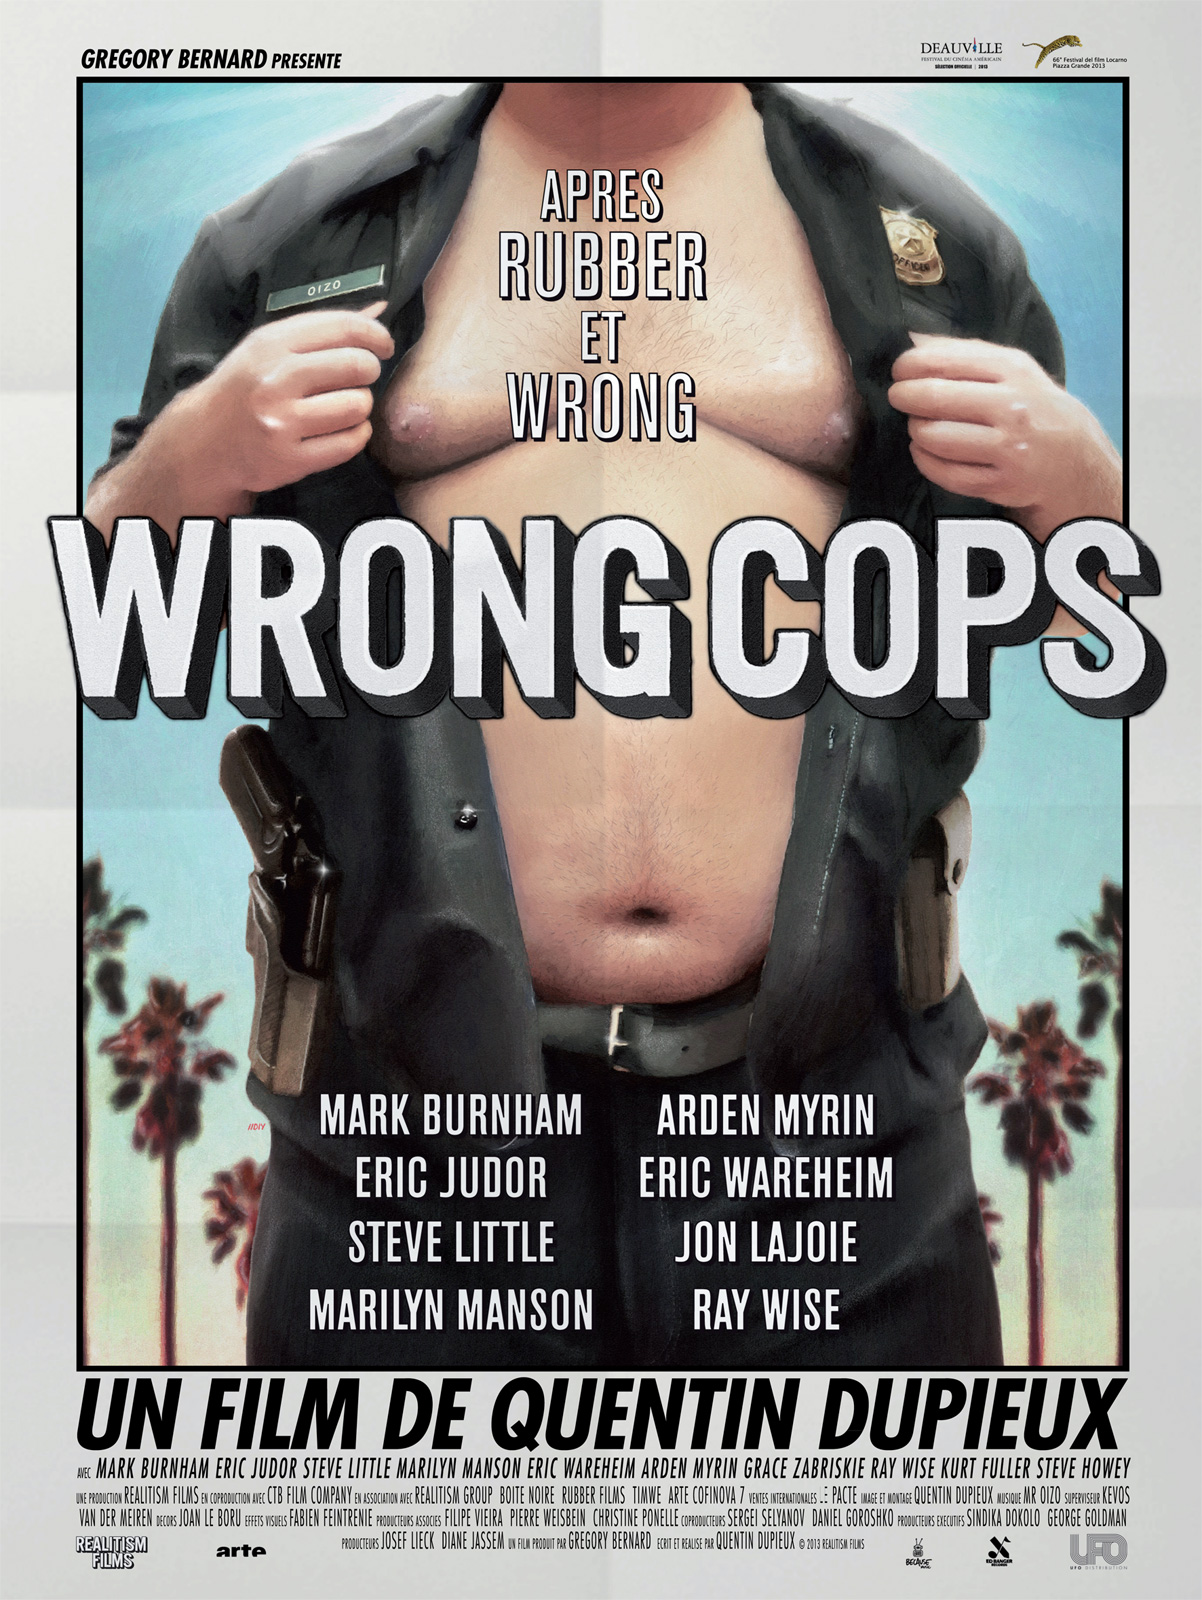 Wrong cops [VOSTFR] dvdrip